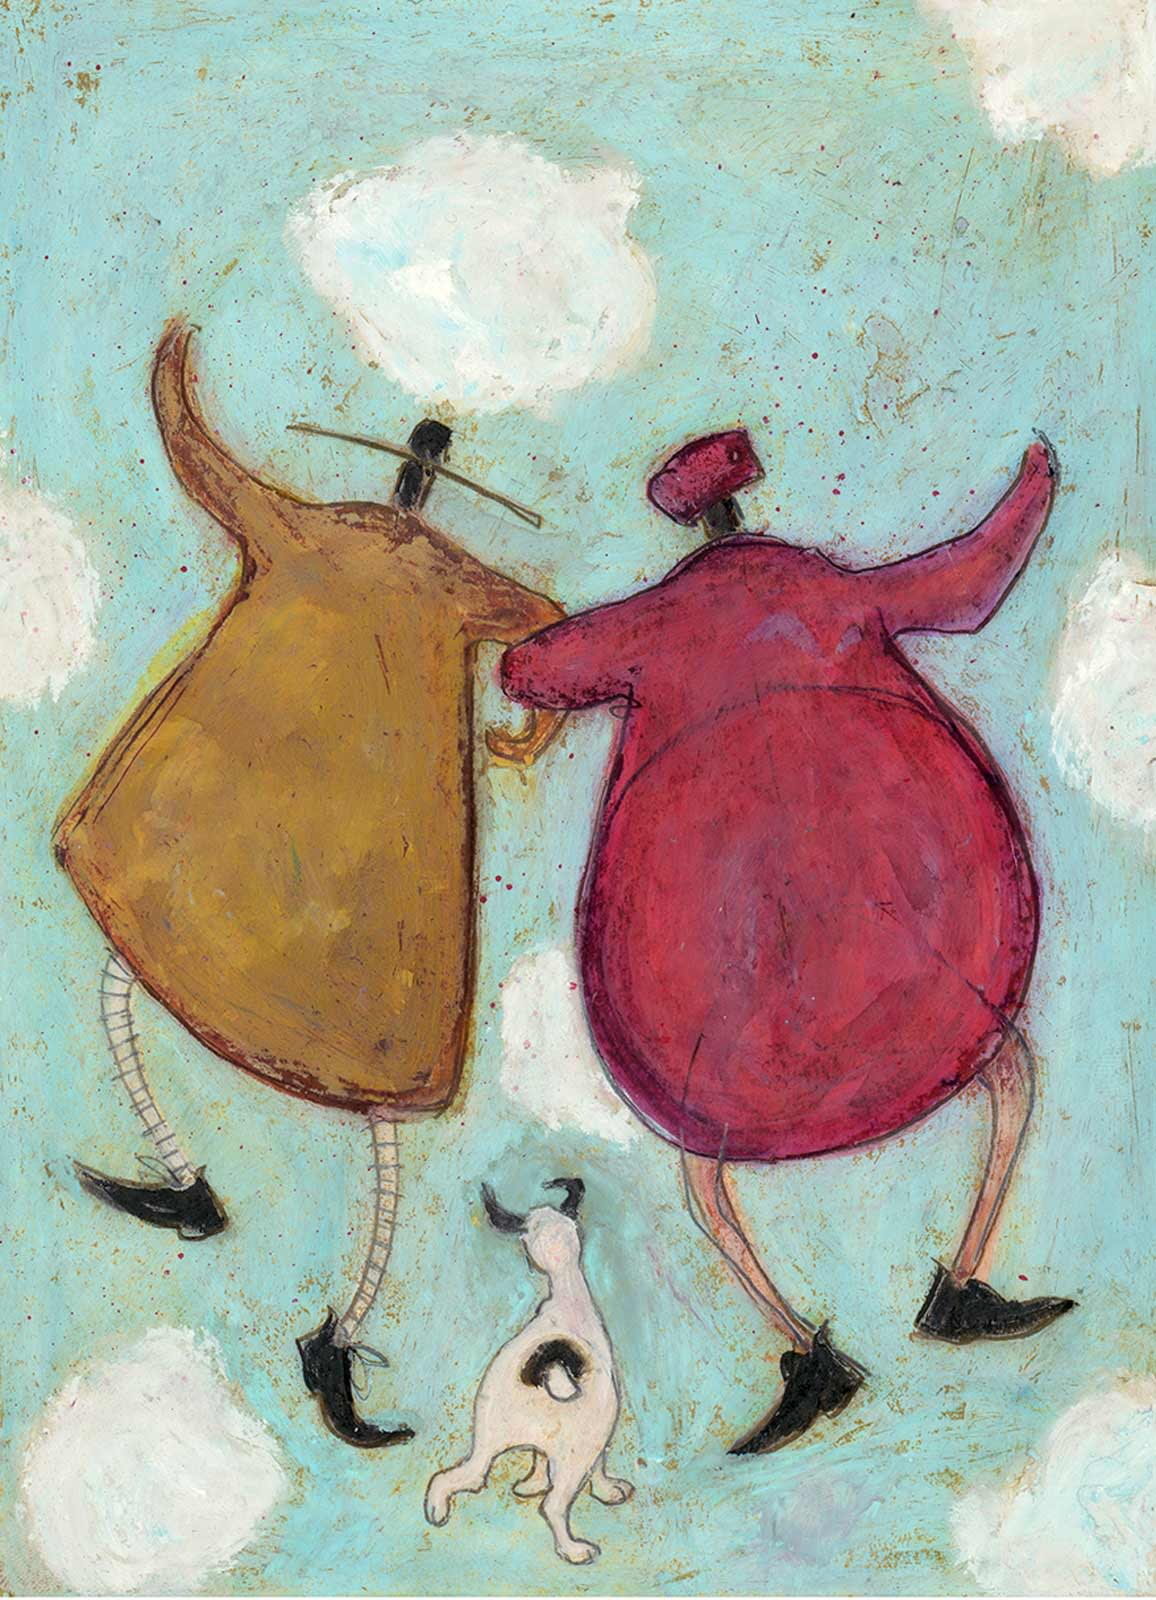 The Best Is Yet To Come, Sam Toft